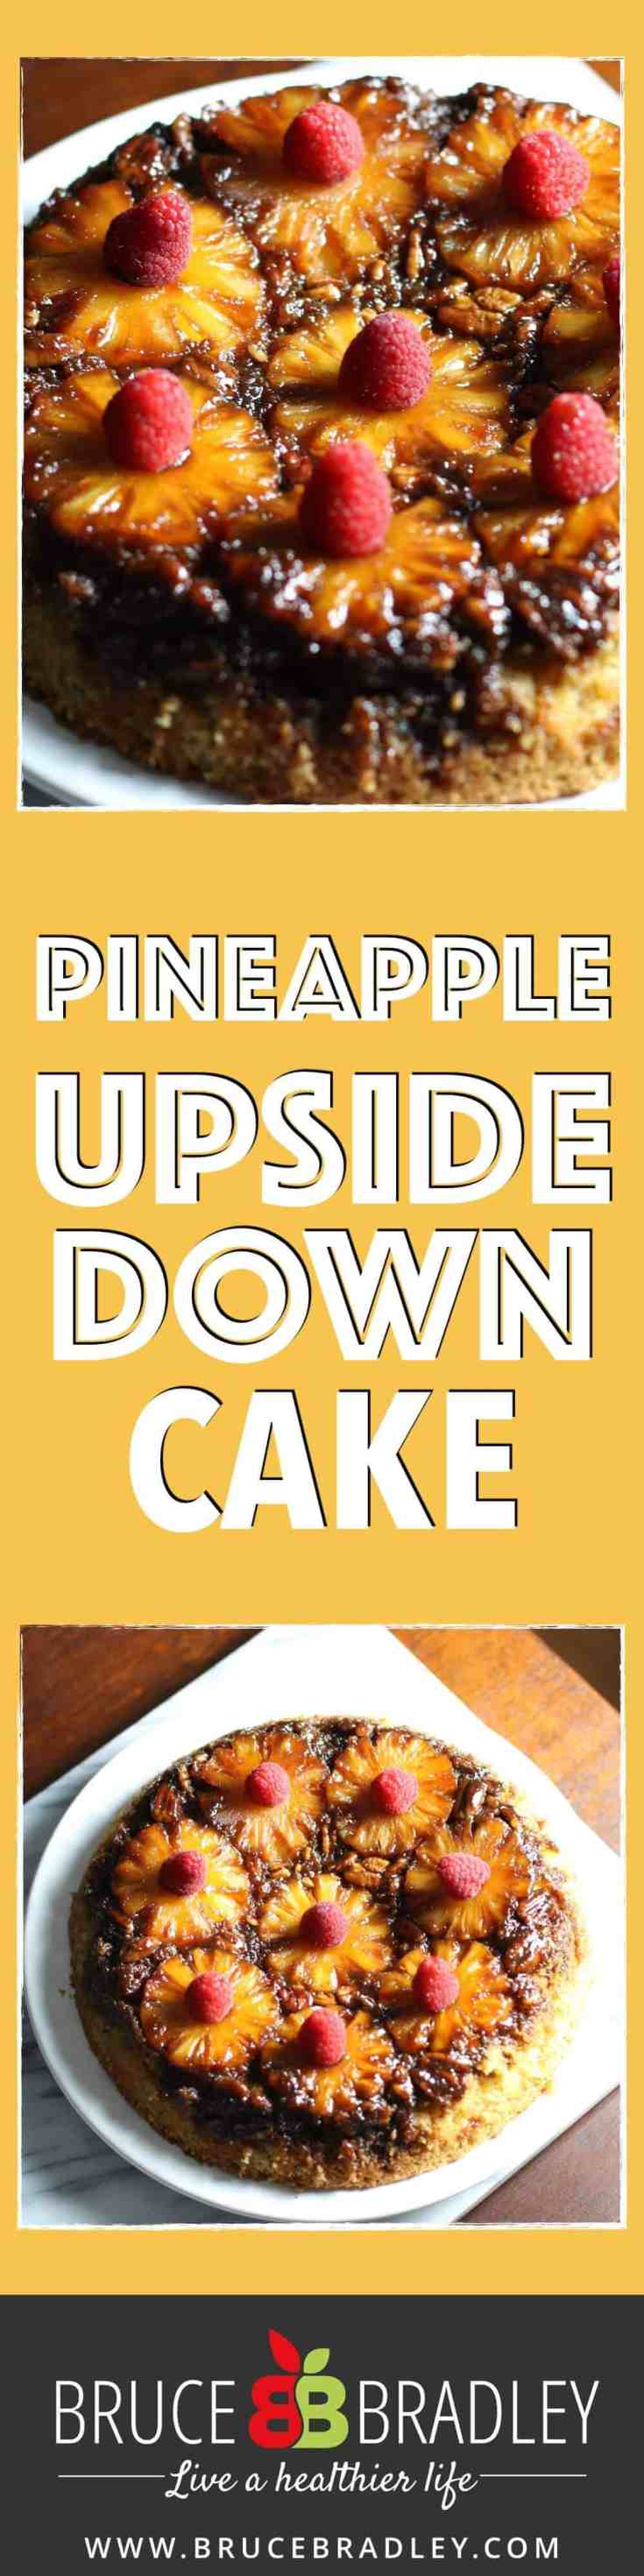 A delicious, unprocessed version of the classic Pineapple Upside-Down Cake recipe. It's perfect for any celebration, and it's super easy since there's no decoration required!